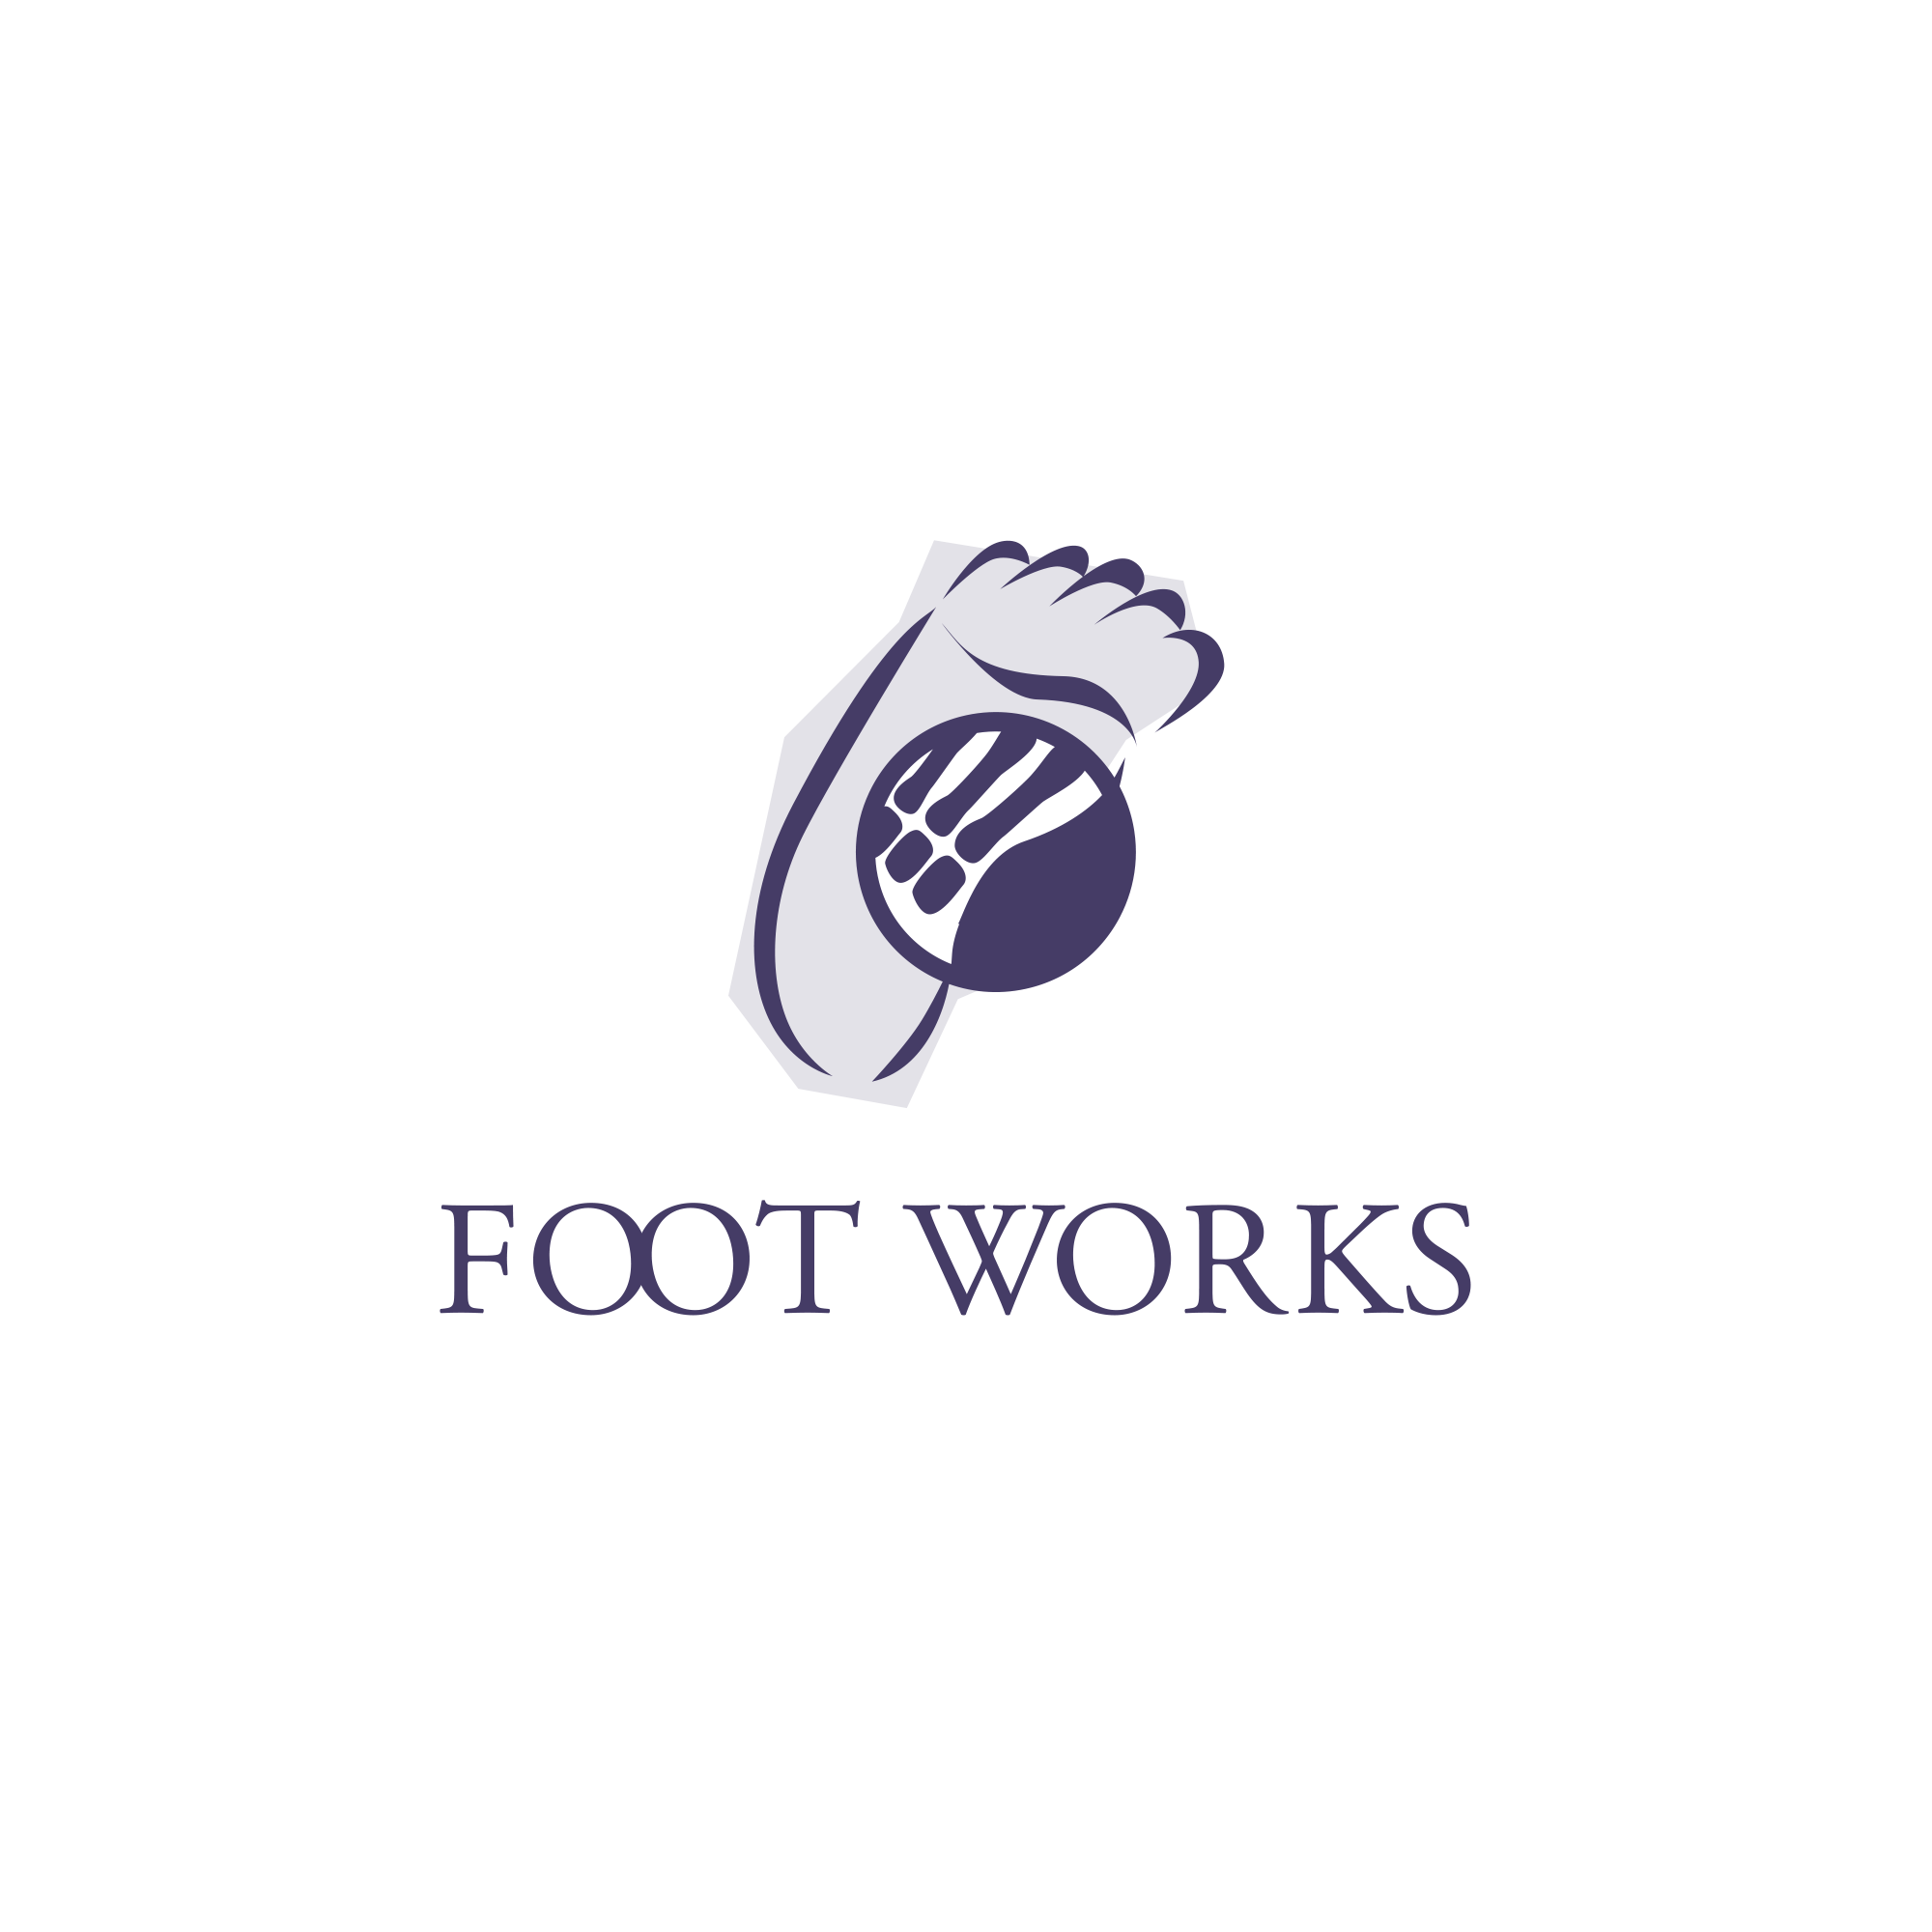 DSC Identity -  Foot Works Pedorthic Services